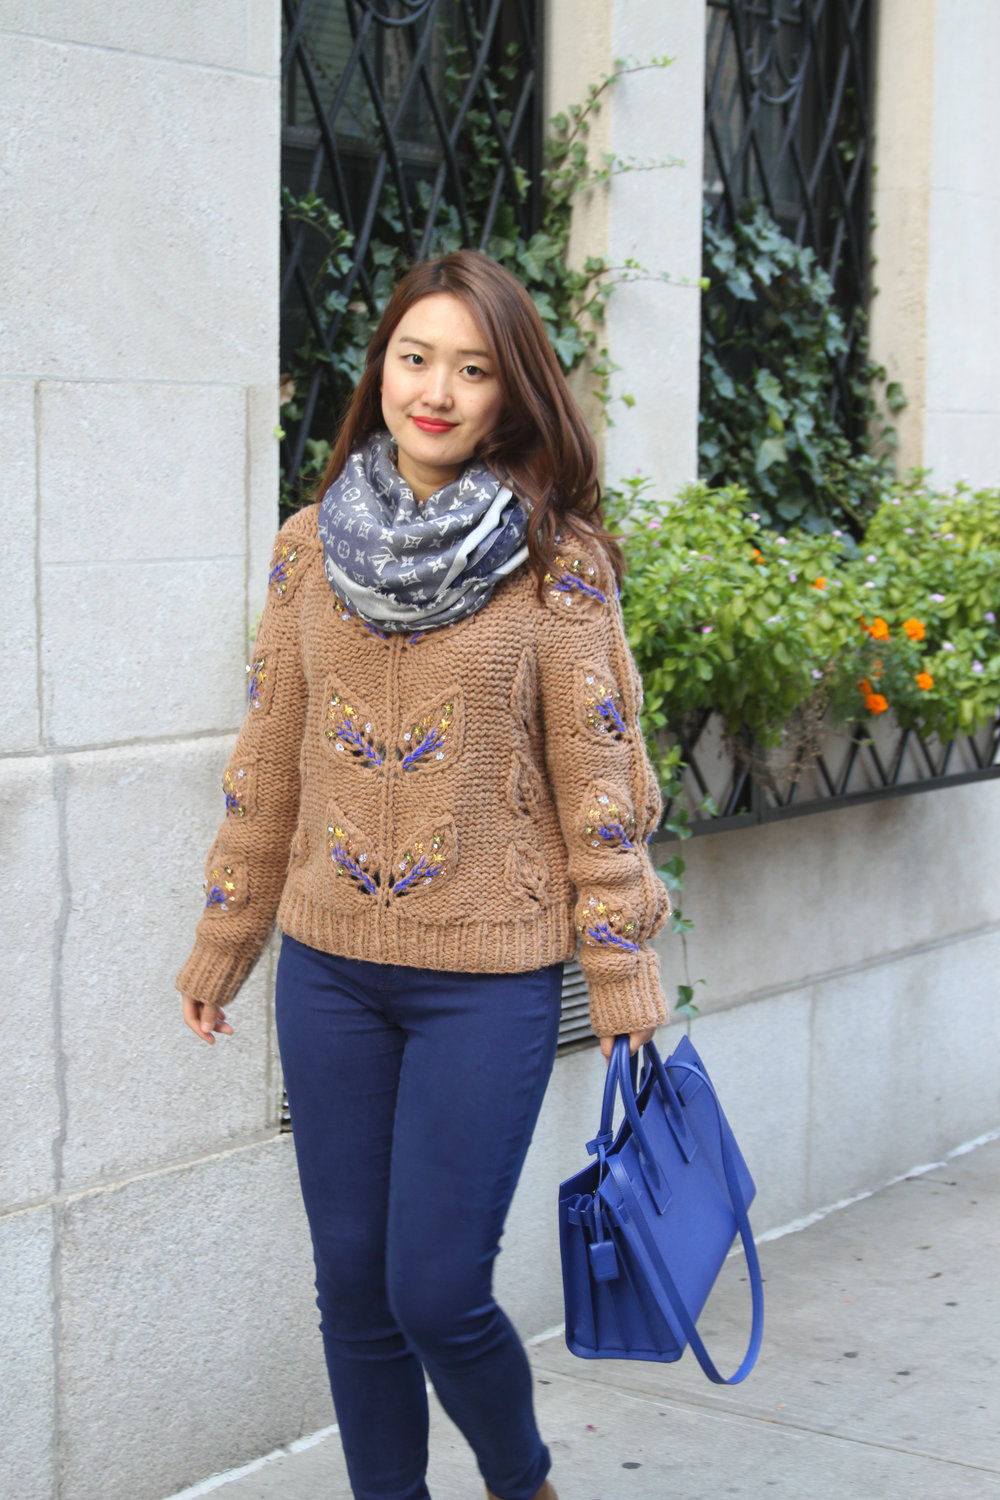 junelemongirl, june lemon girl, fashion blogger, new york fashion blogger, nyc street, street style, street fashion, autumn fashion, autumn 2016, winter 2016, cable sweater, embroidered sweater, coffee sweater, brown sweater, autumn palette, soft autumn, blueberry jeans, blue satchel, saint laurent, sac de jour, j brand jeans, jimmy choo, platform ankle boots, brown boots, lv monogram shawl, blue denim